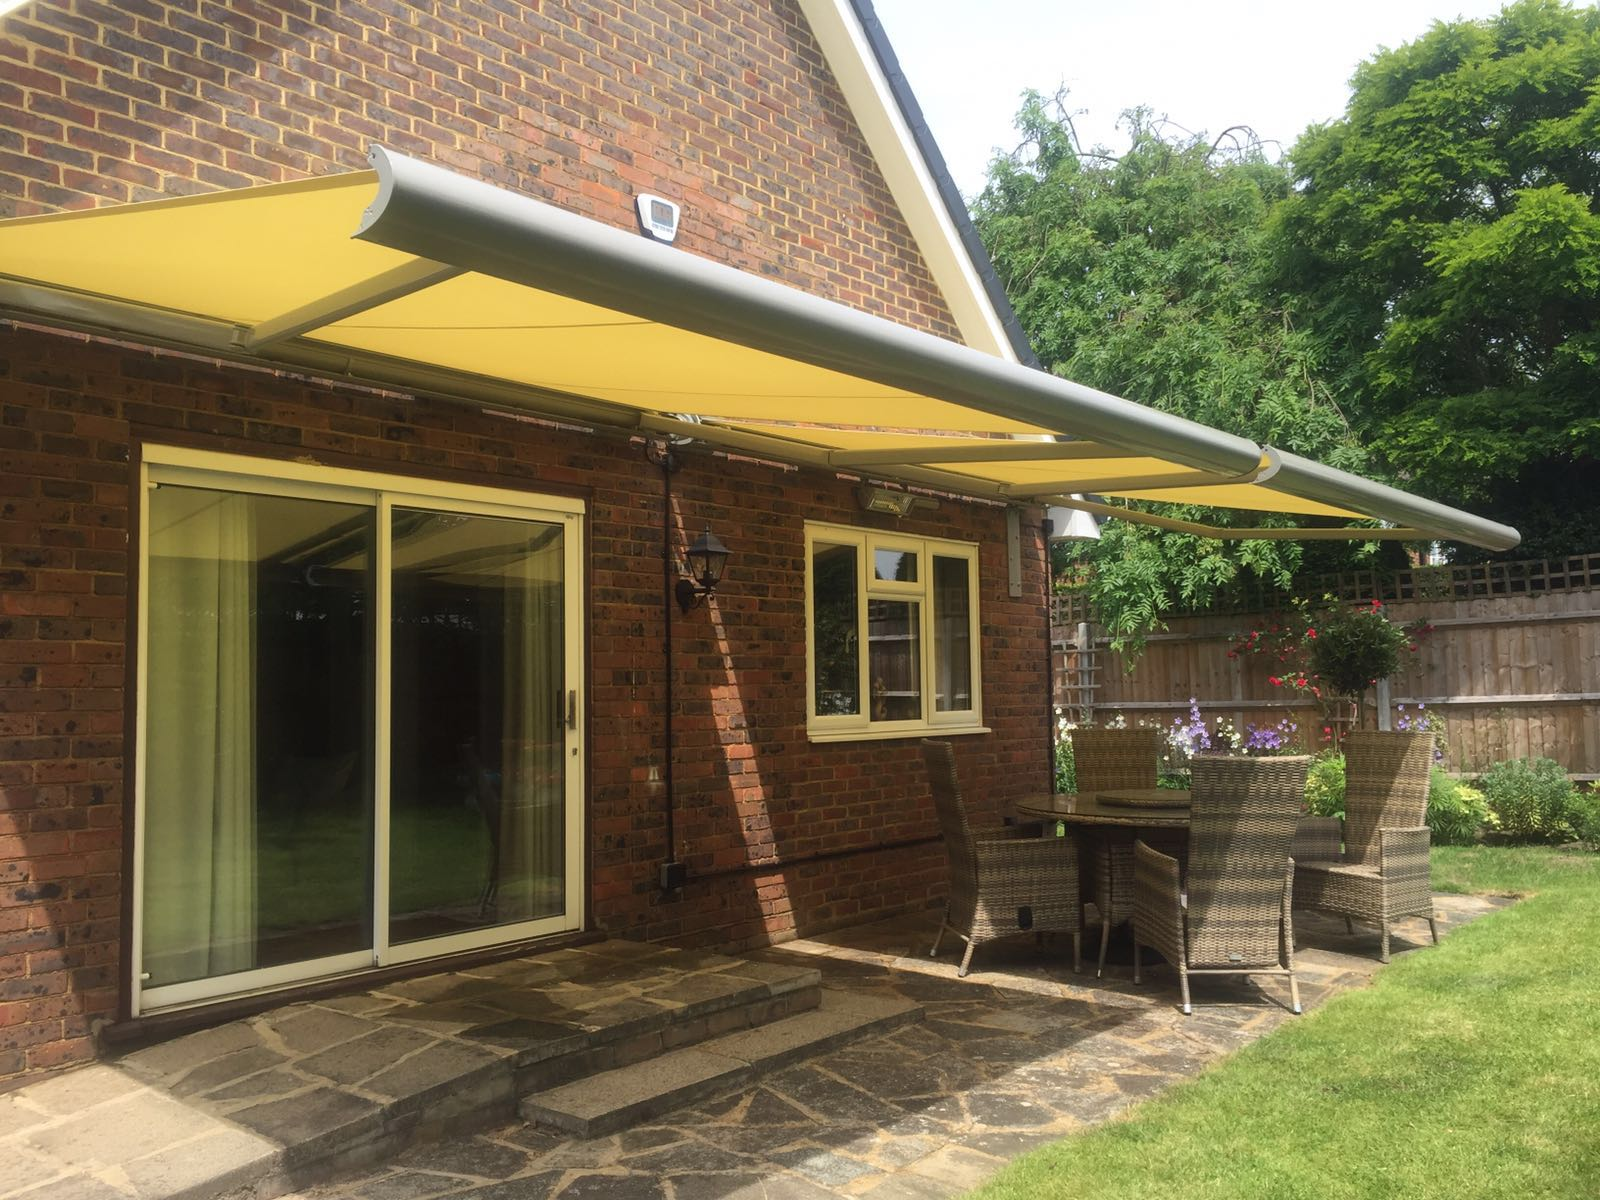 electric awnings radiant blindsradiant blinds